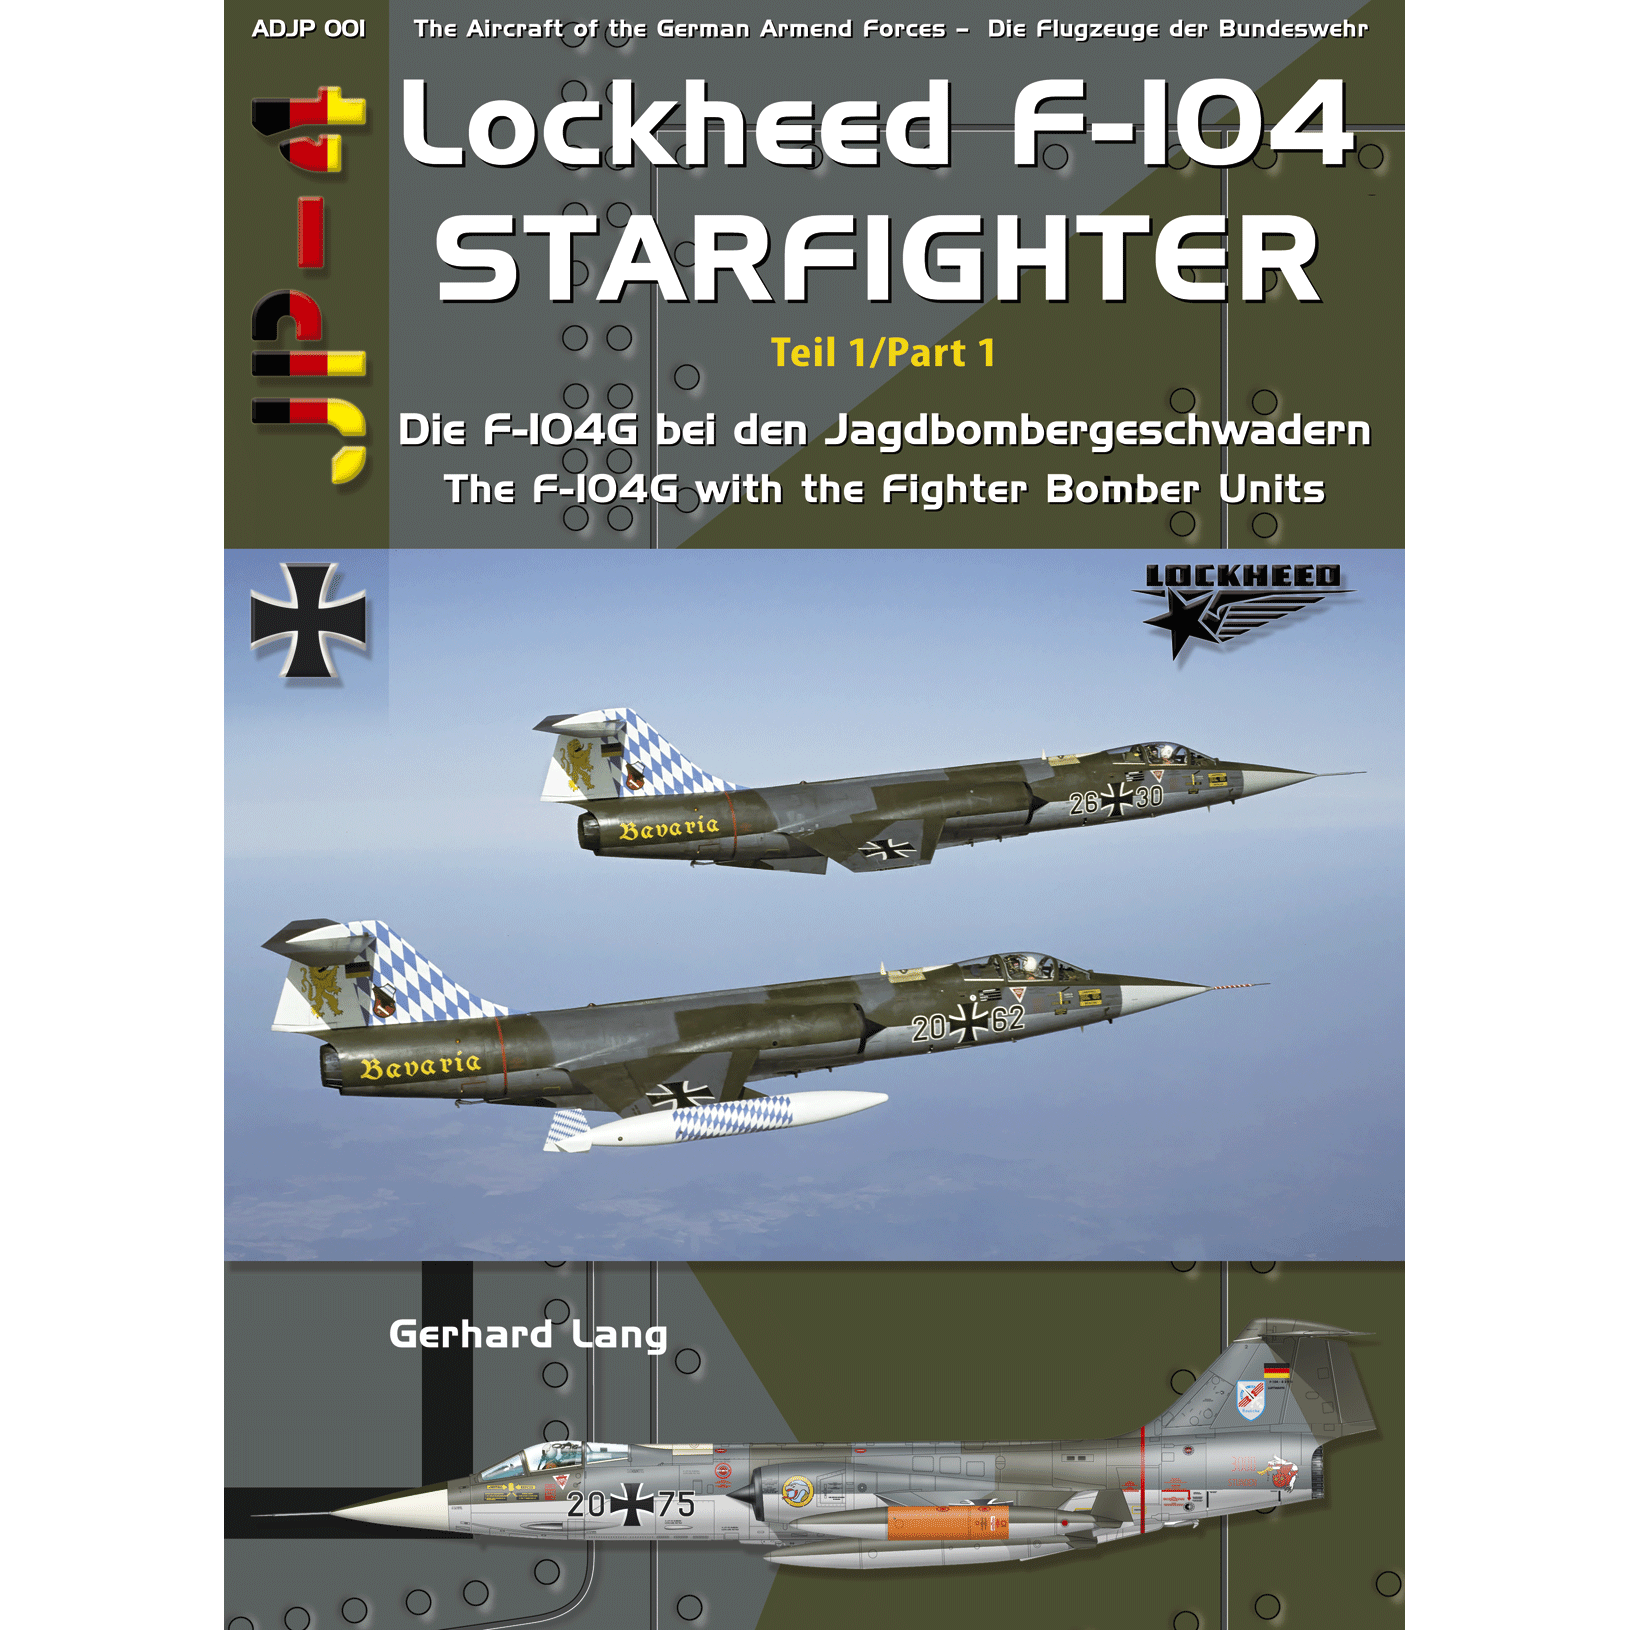 ADJP 001 F-104G Starfighter (Lw) Part 1